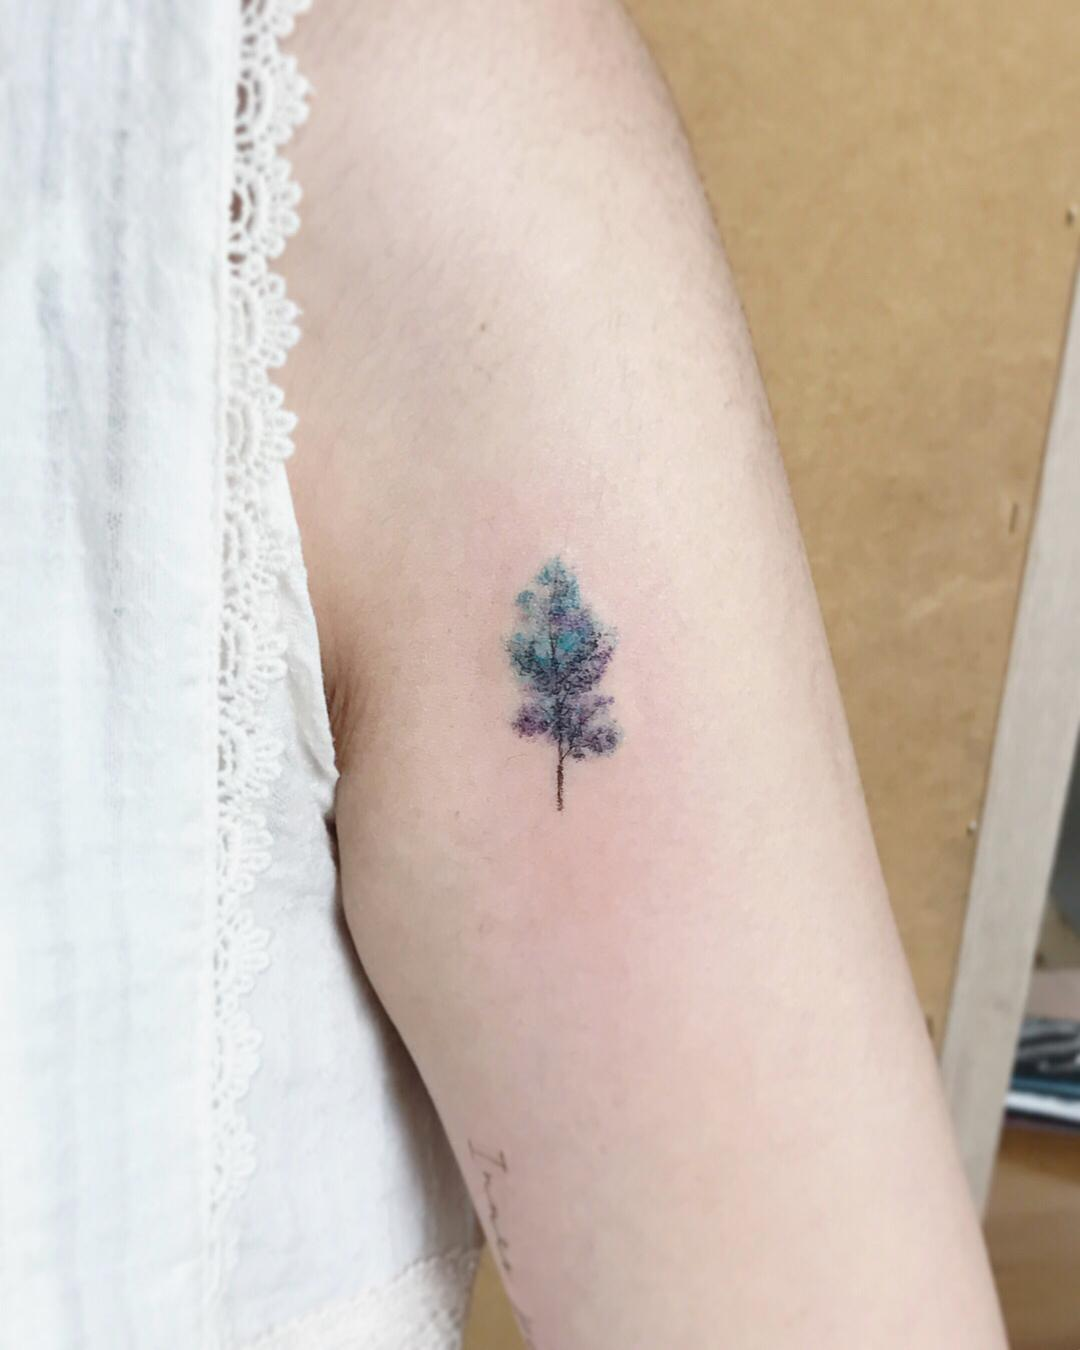 Tiny watercolor tree by @tattooist_flower